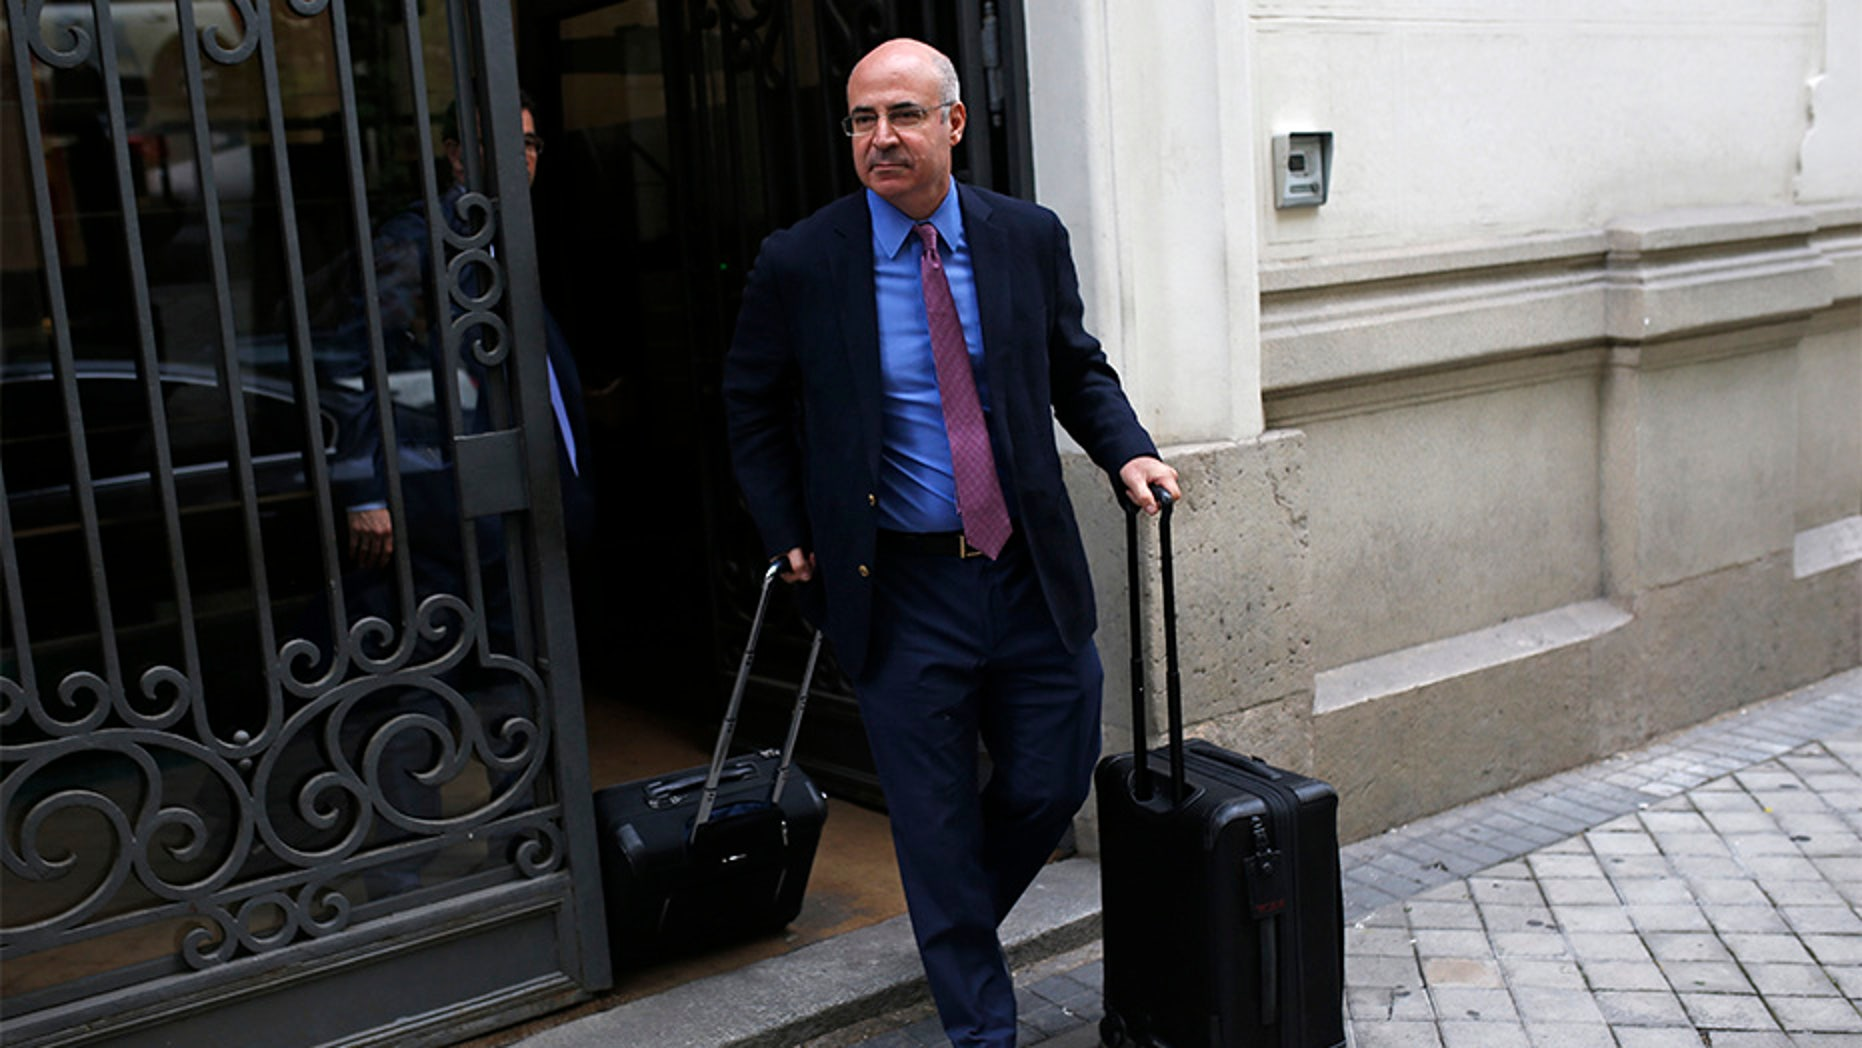 May 30, 2018: William Browder leaves the anti-graft prosecutor's office in Madrid.